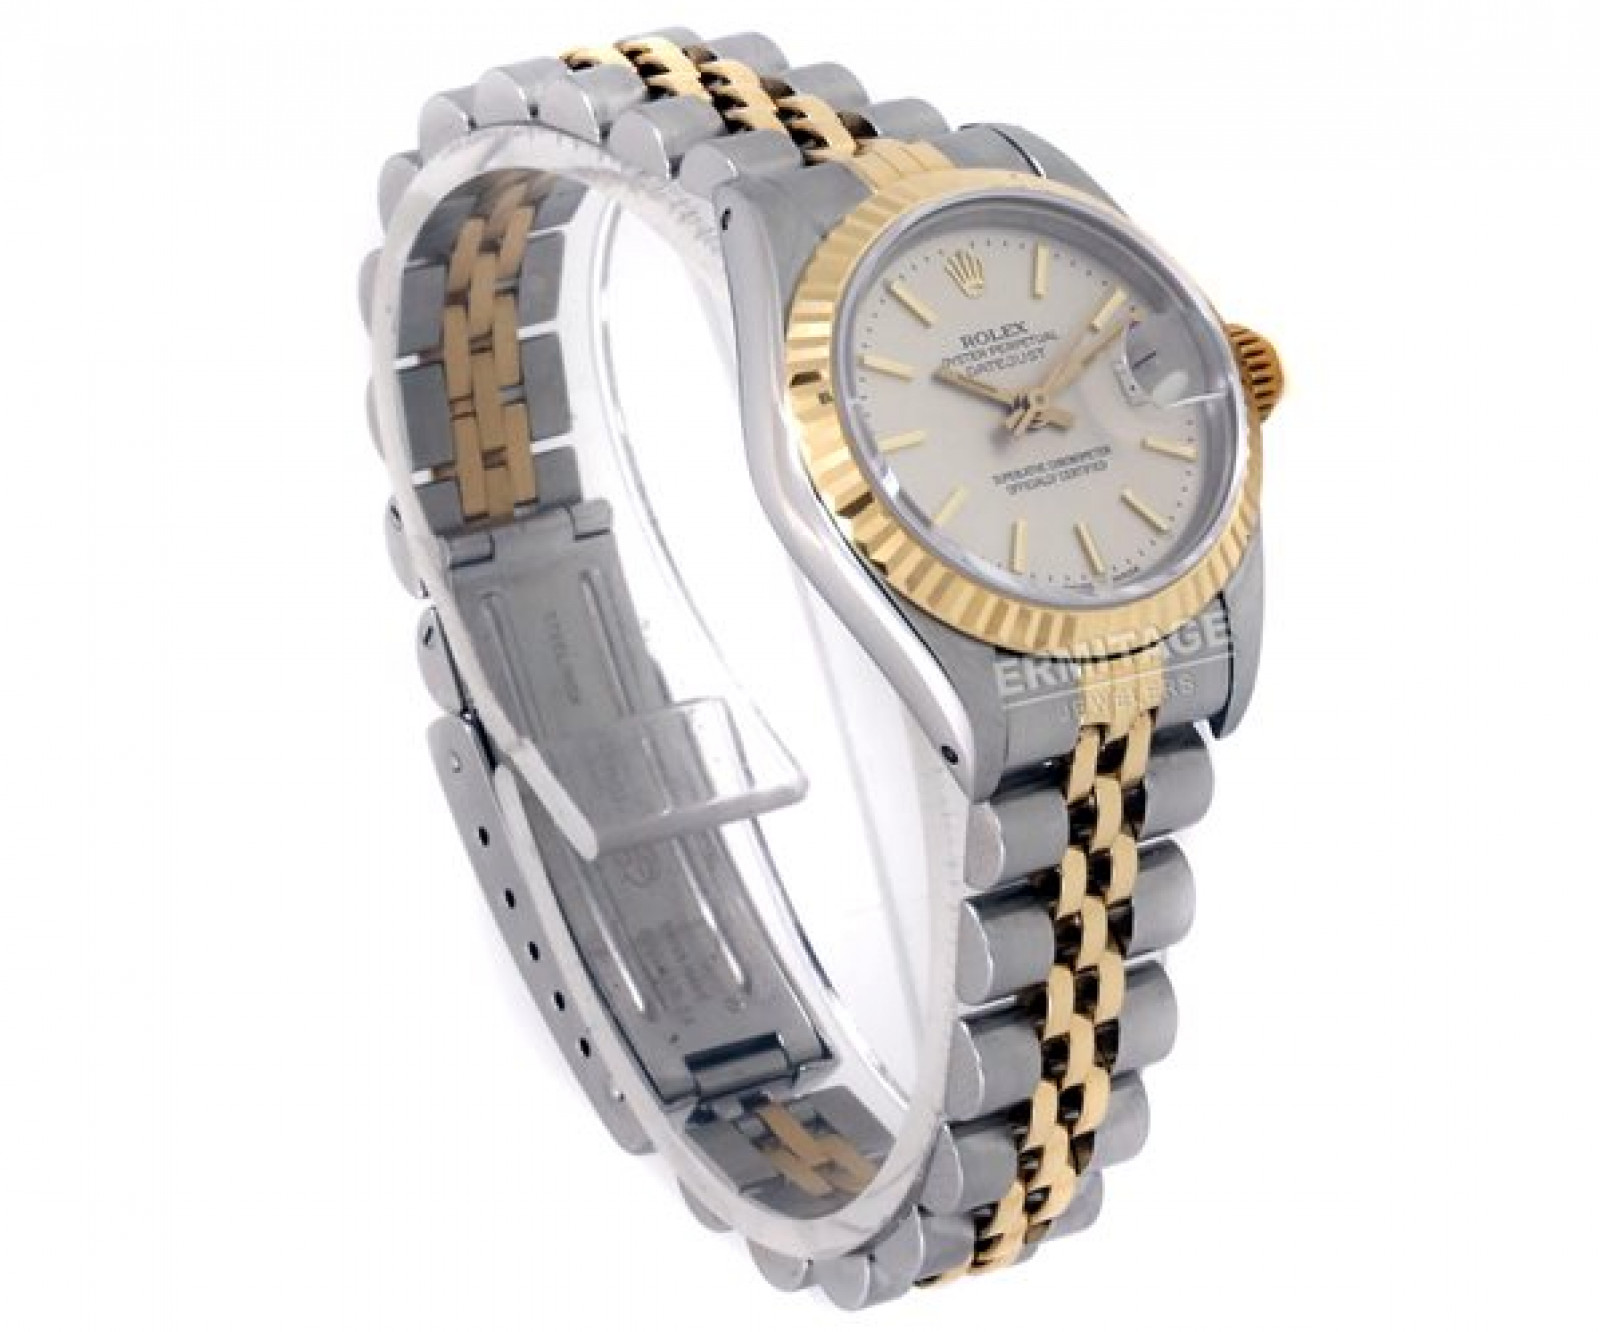 Rolex Datejust 69173 Gold & Steel With Silver Dial